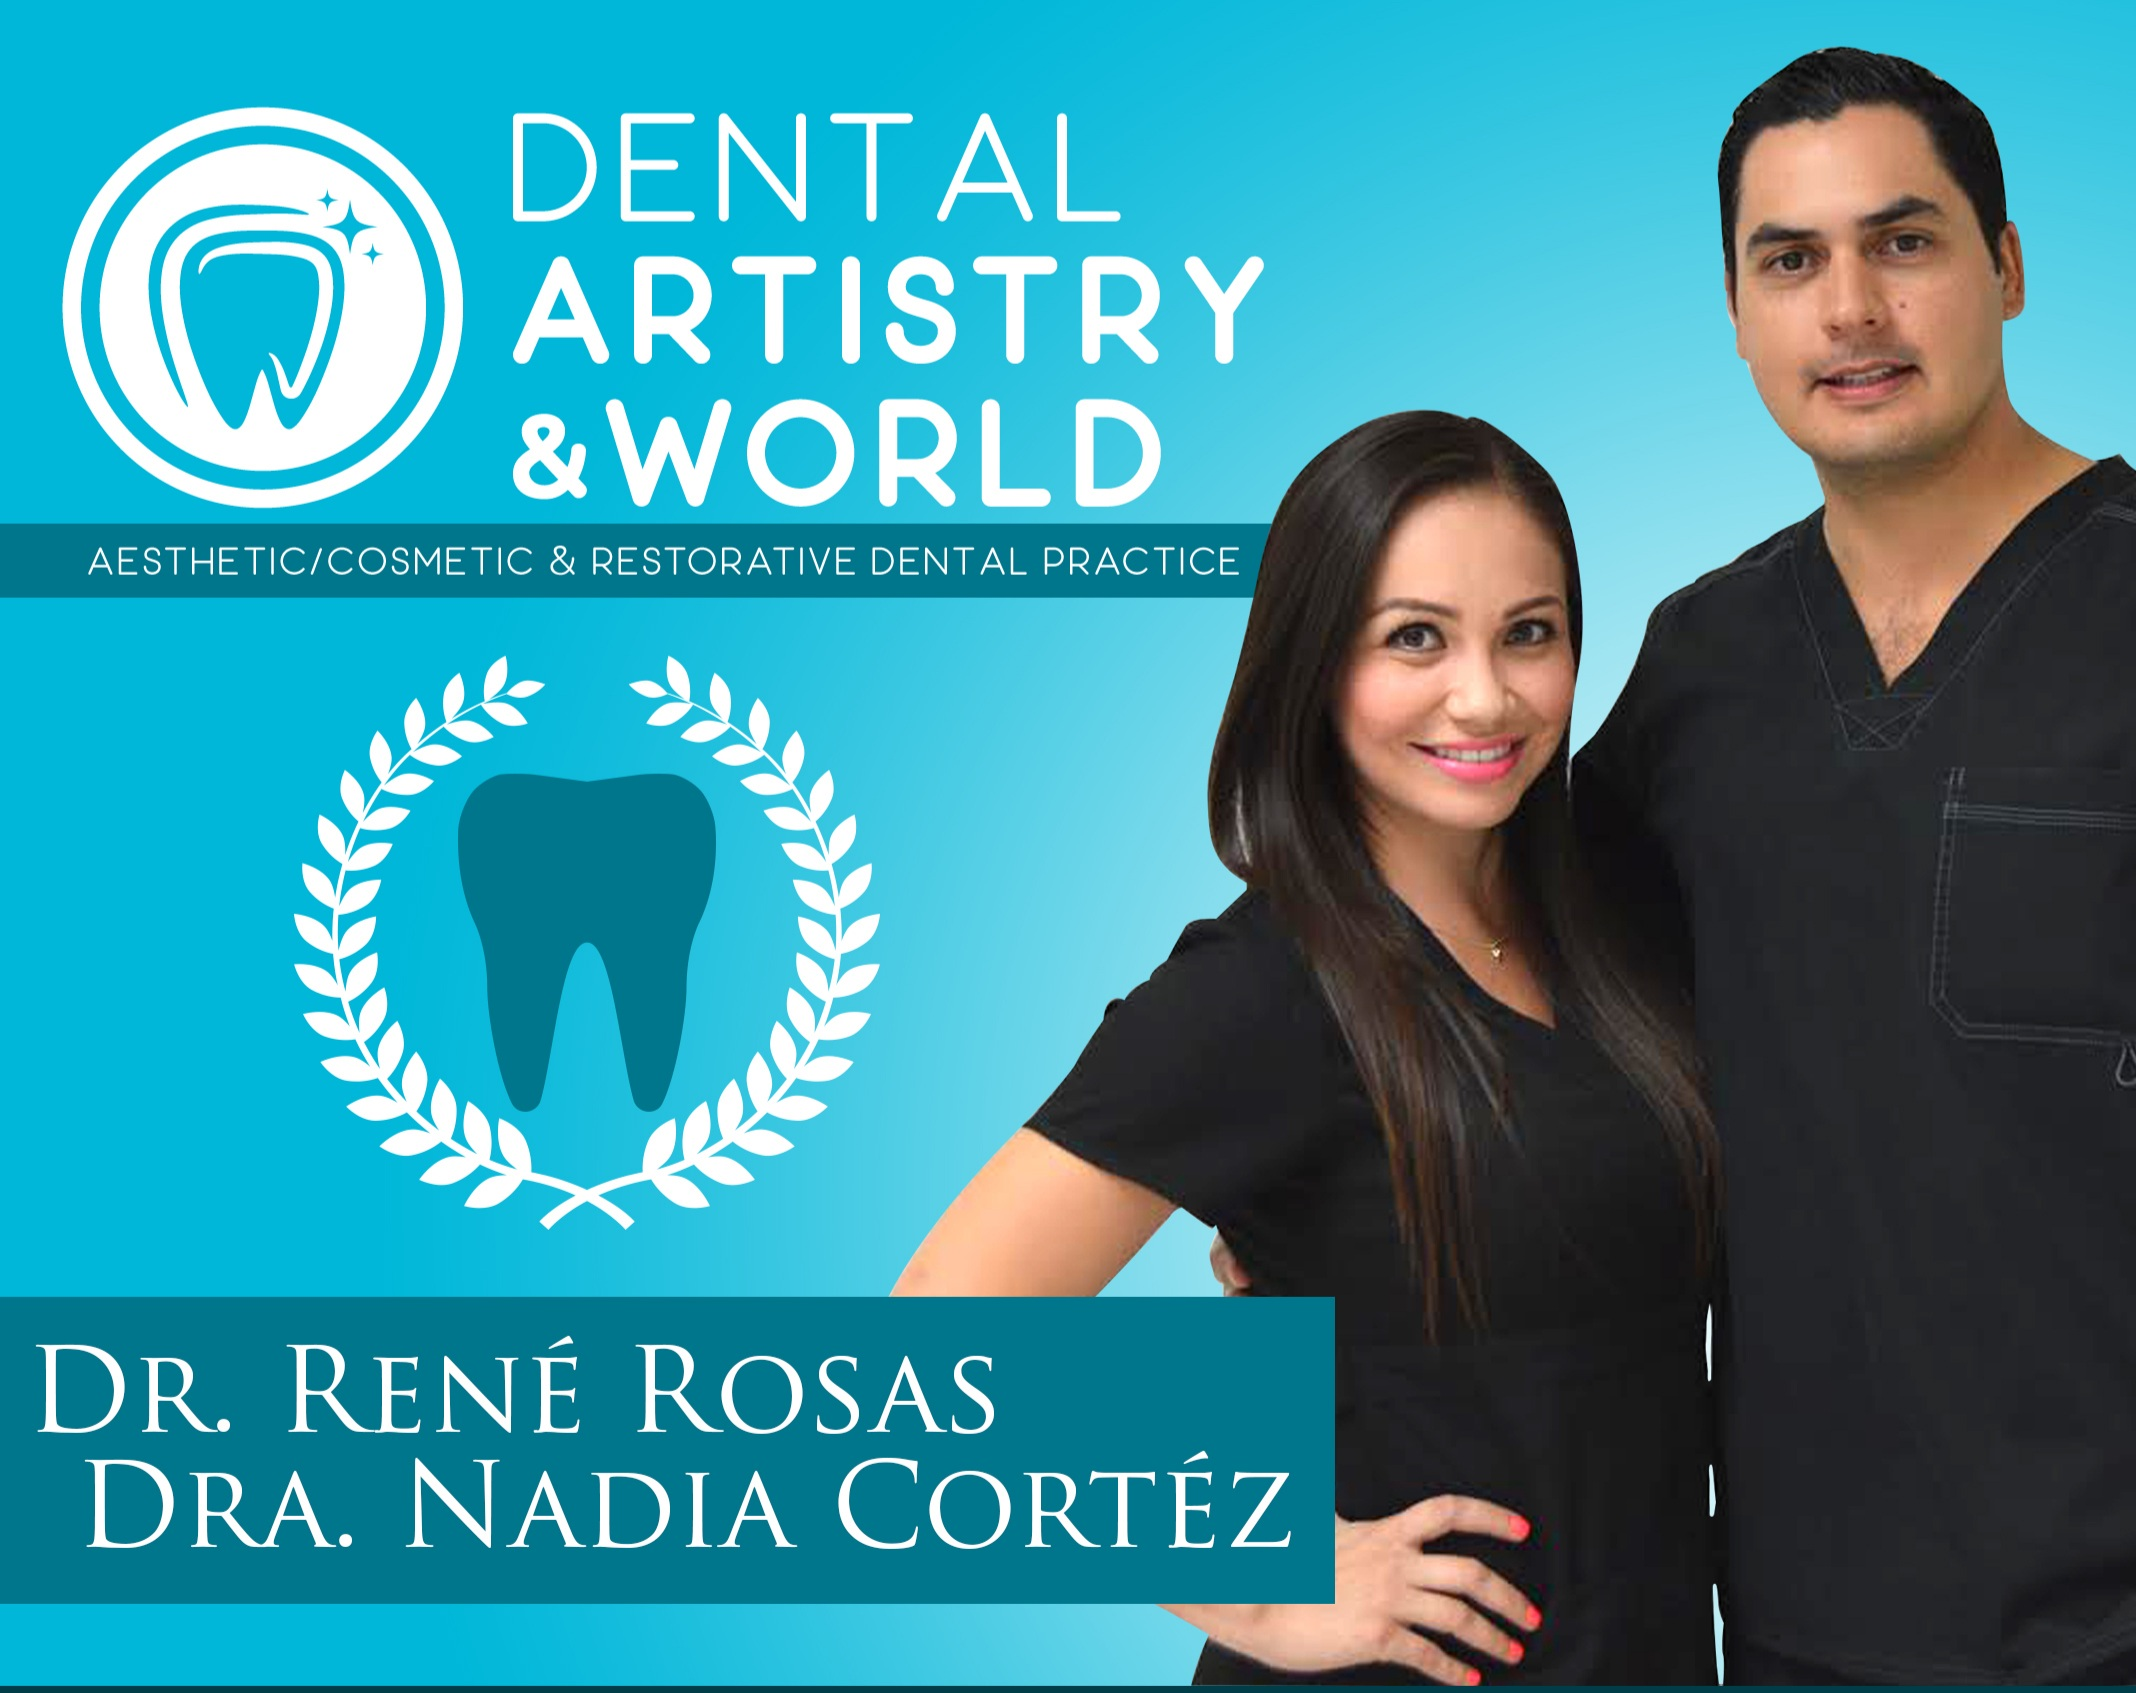 Dental Artistry & World Dental Center